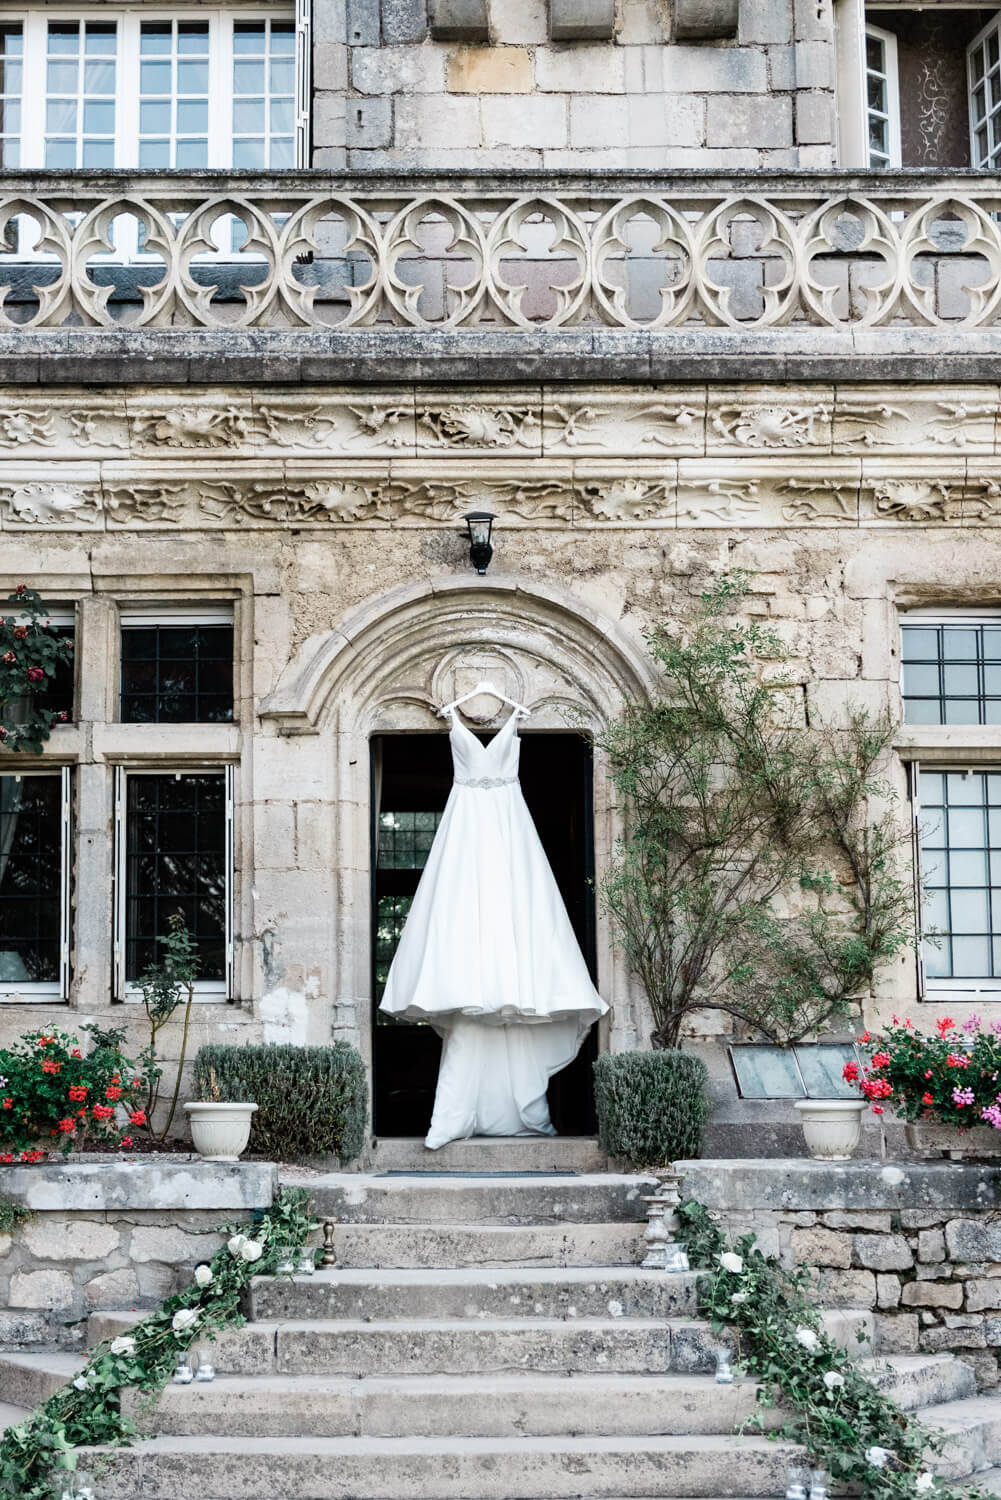 A Stella York wedding dress hanging in the entrance of Chateau d'Hattonchatel in the Lorraine region in France